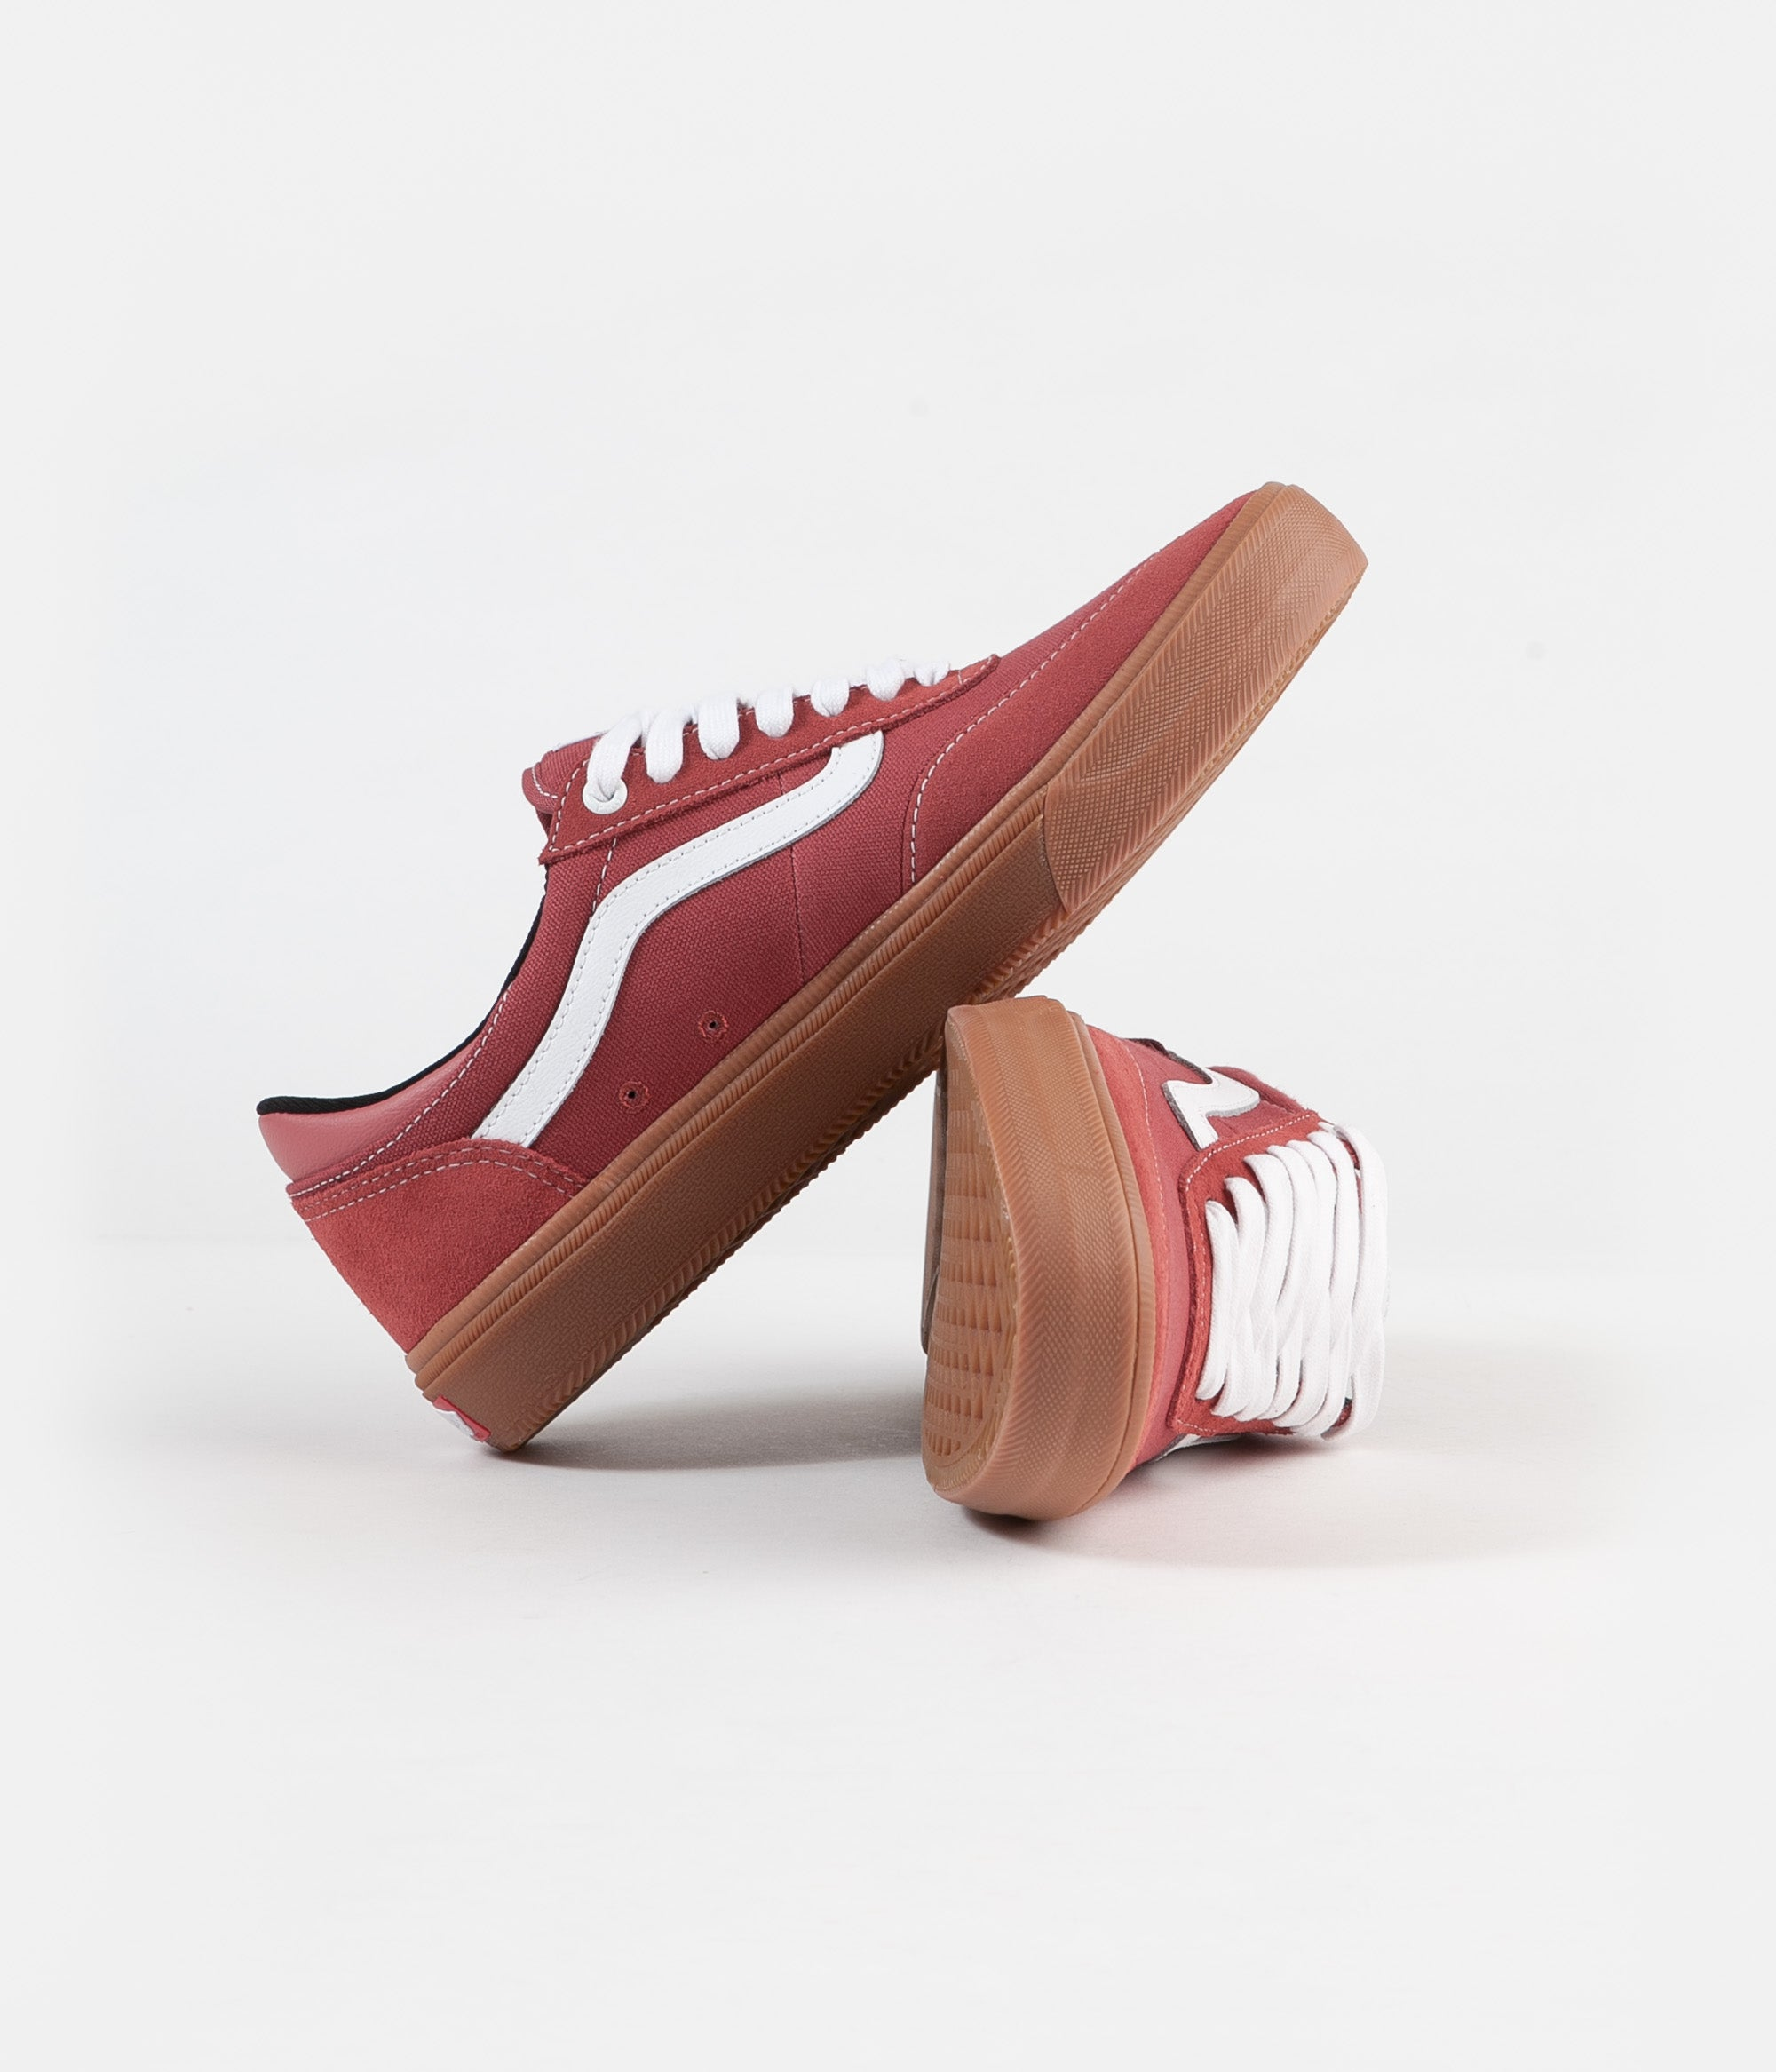 Vans Gilbert Crockett 2 Pro Shoes - (Gum) Mineral Red / True White